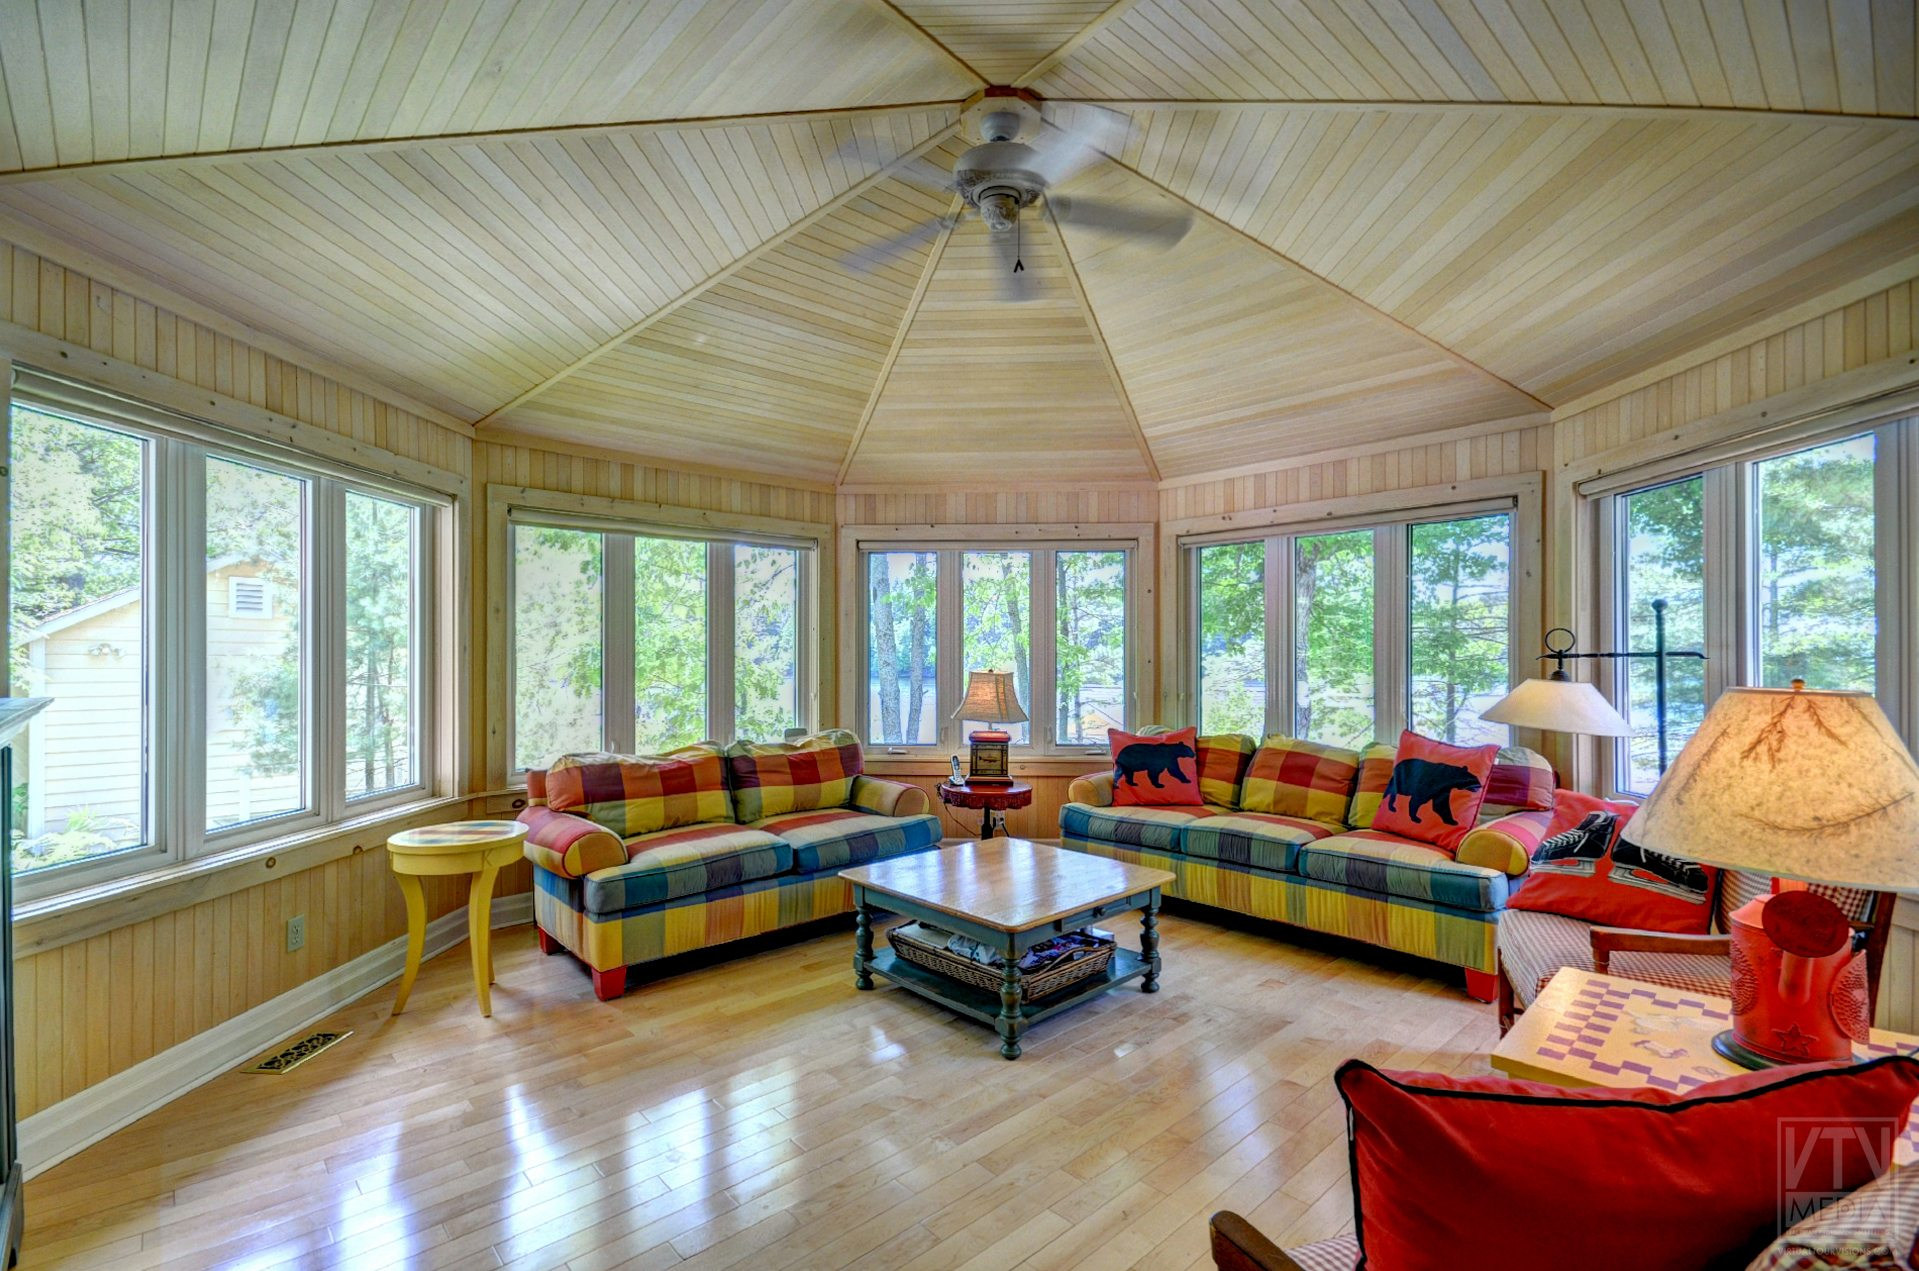 milford-bay-cottage-for-sale-1022-milford-manor-road-11